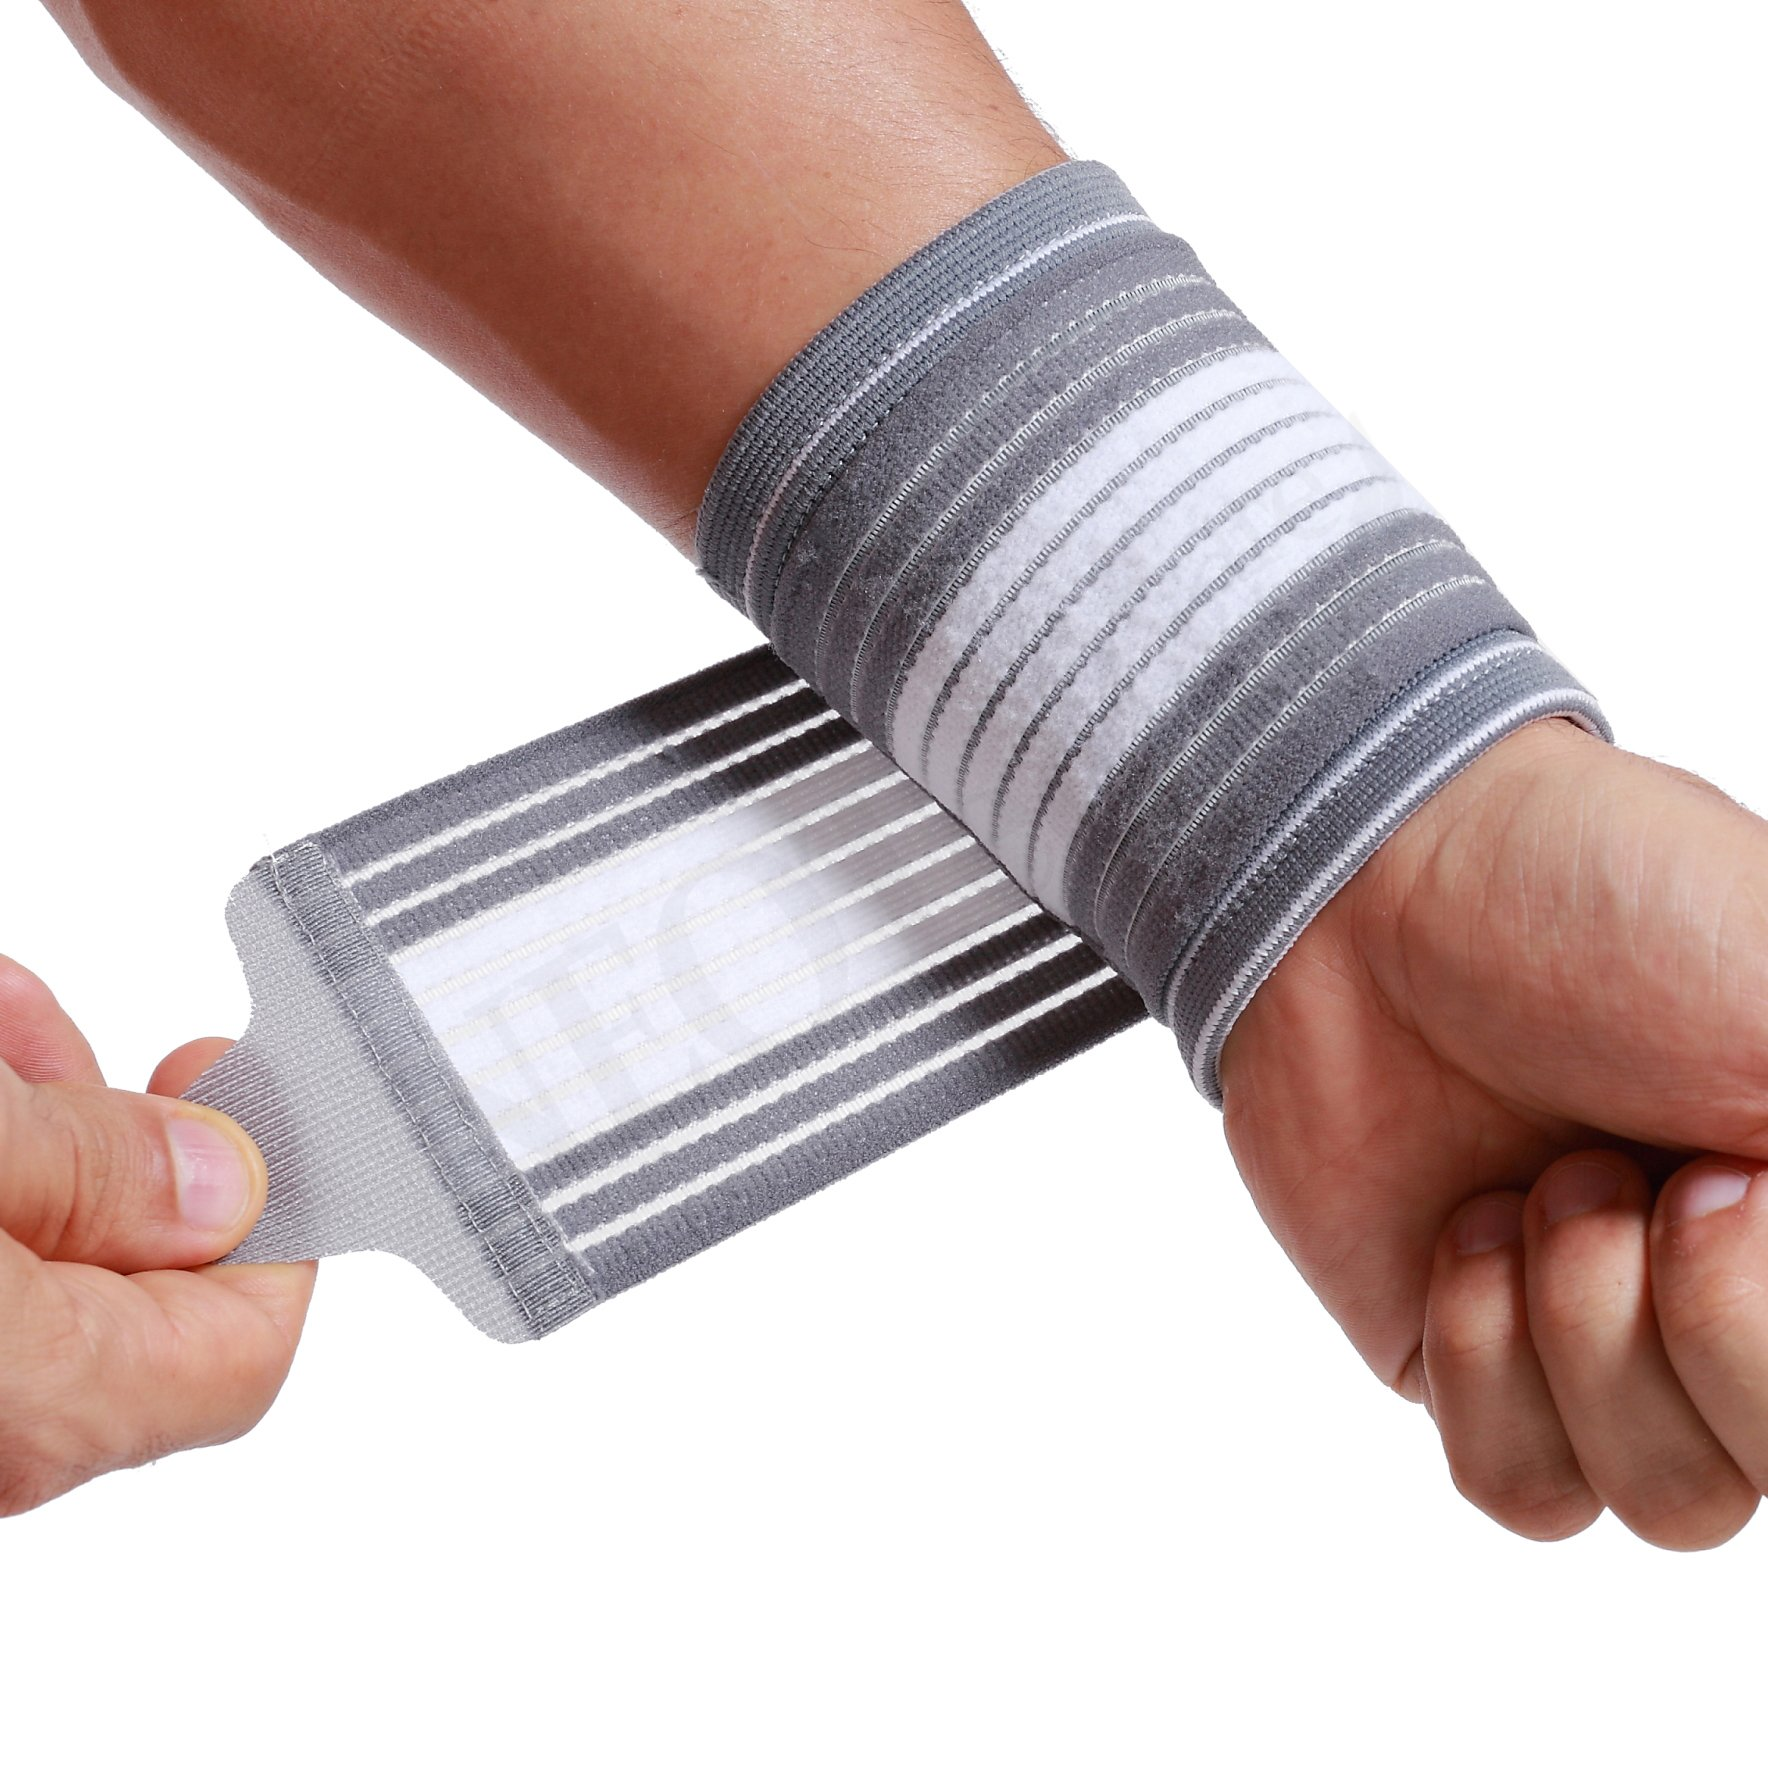 Neotech Care Wrist Band, Support, Sleeve - Adjustable Compression Strap - Elastic & Breathable Fabric - for Tennis, Sports, Exercise - Men, Women, Right or Left - Grey Color (Size M)